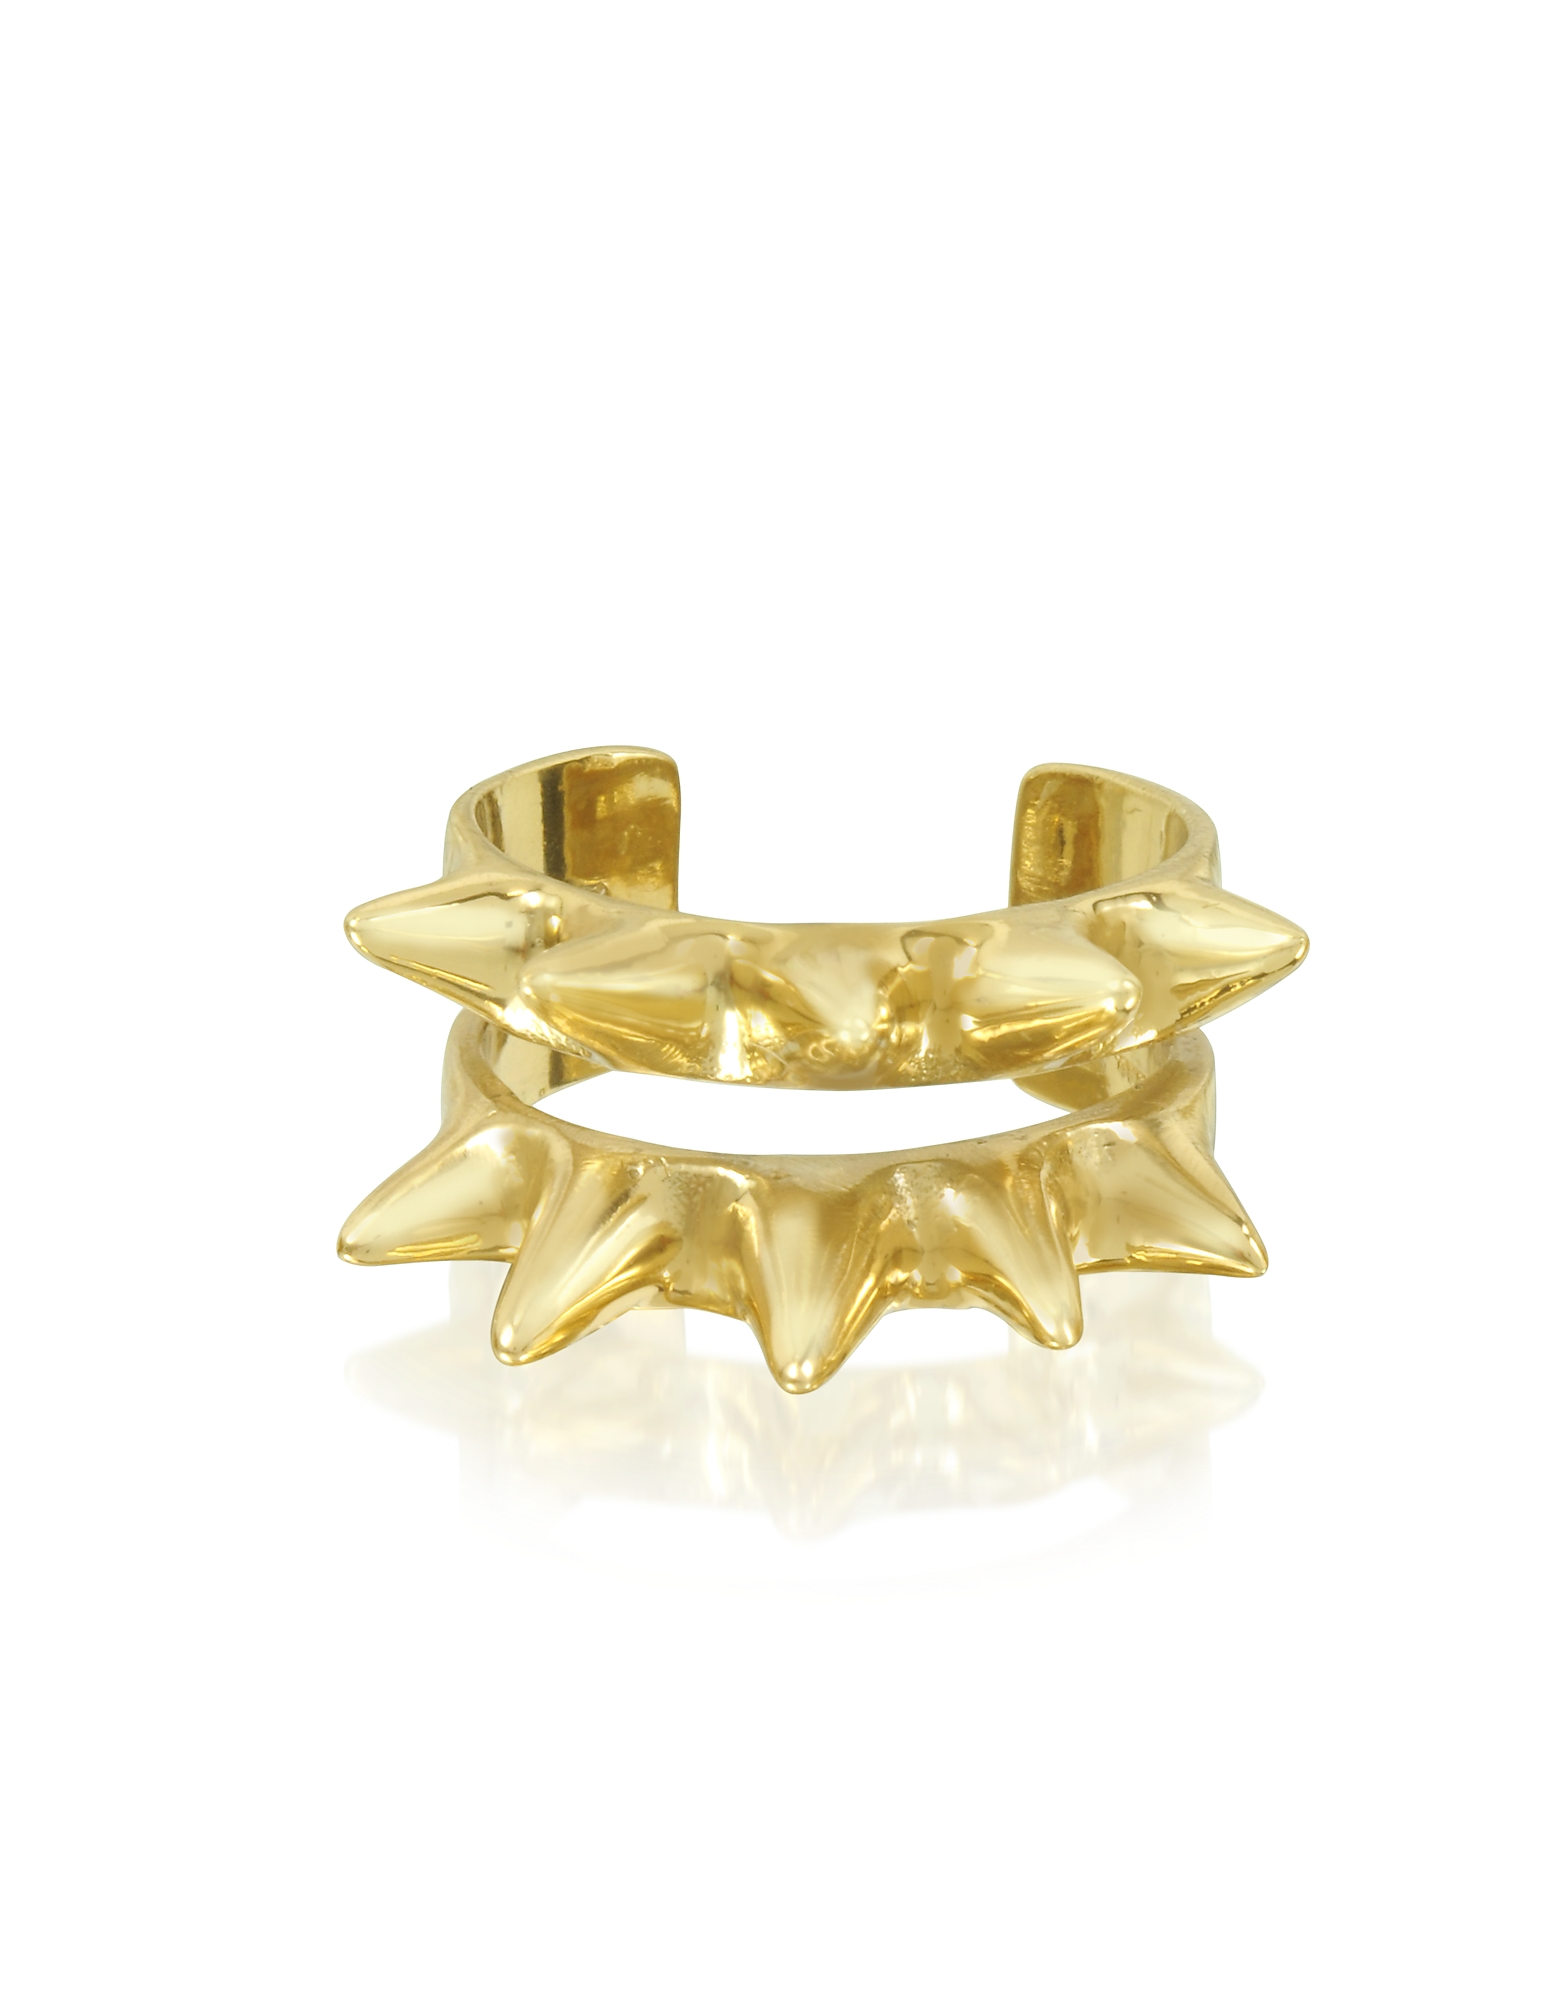 Bernard Delettrez Rings, Double Band Bronze Ring w/Spikes